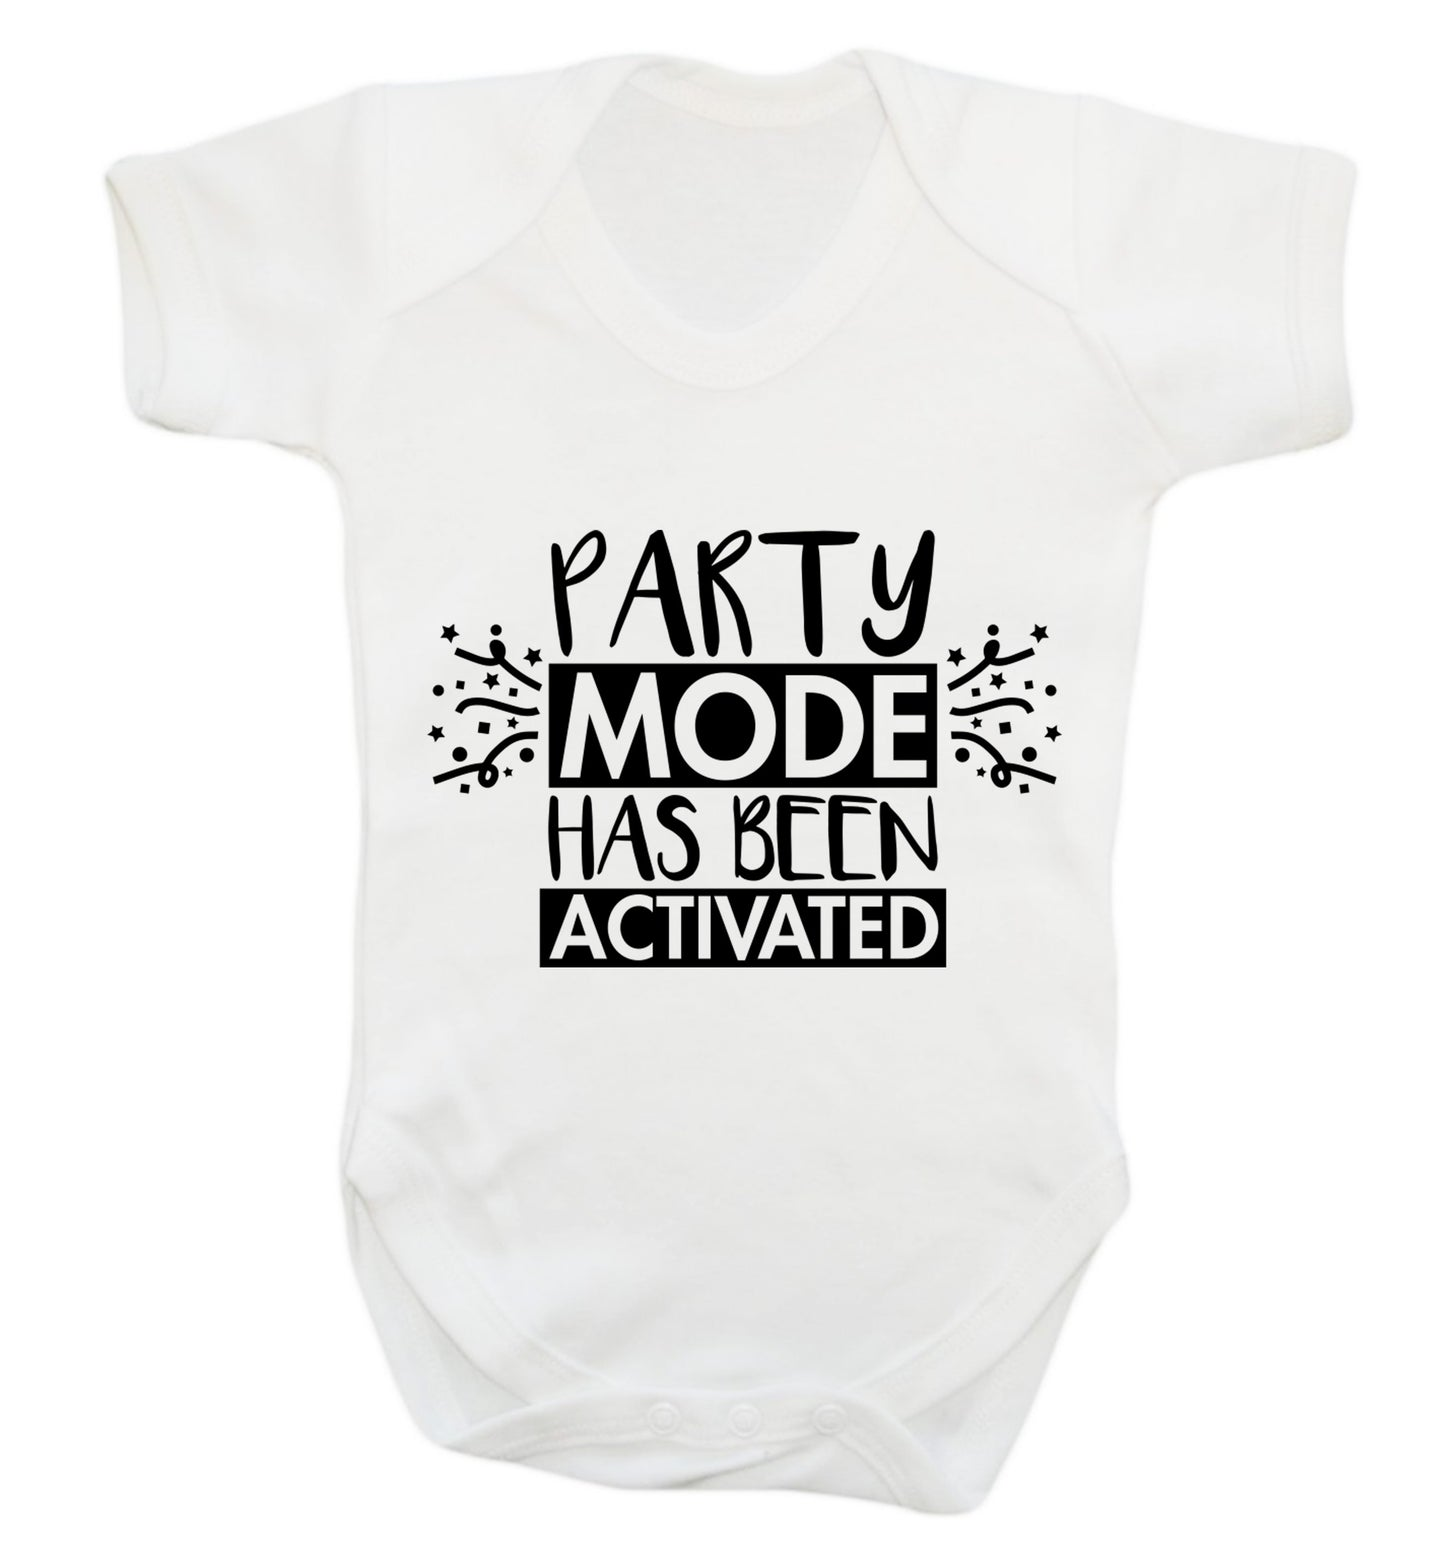 Please do not disturb party mode has been activated Baby Vest white 18-24 months